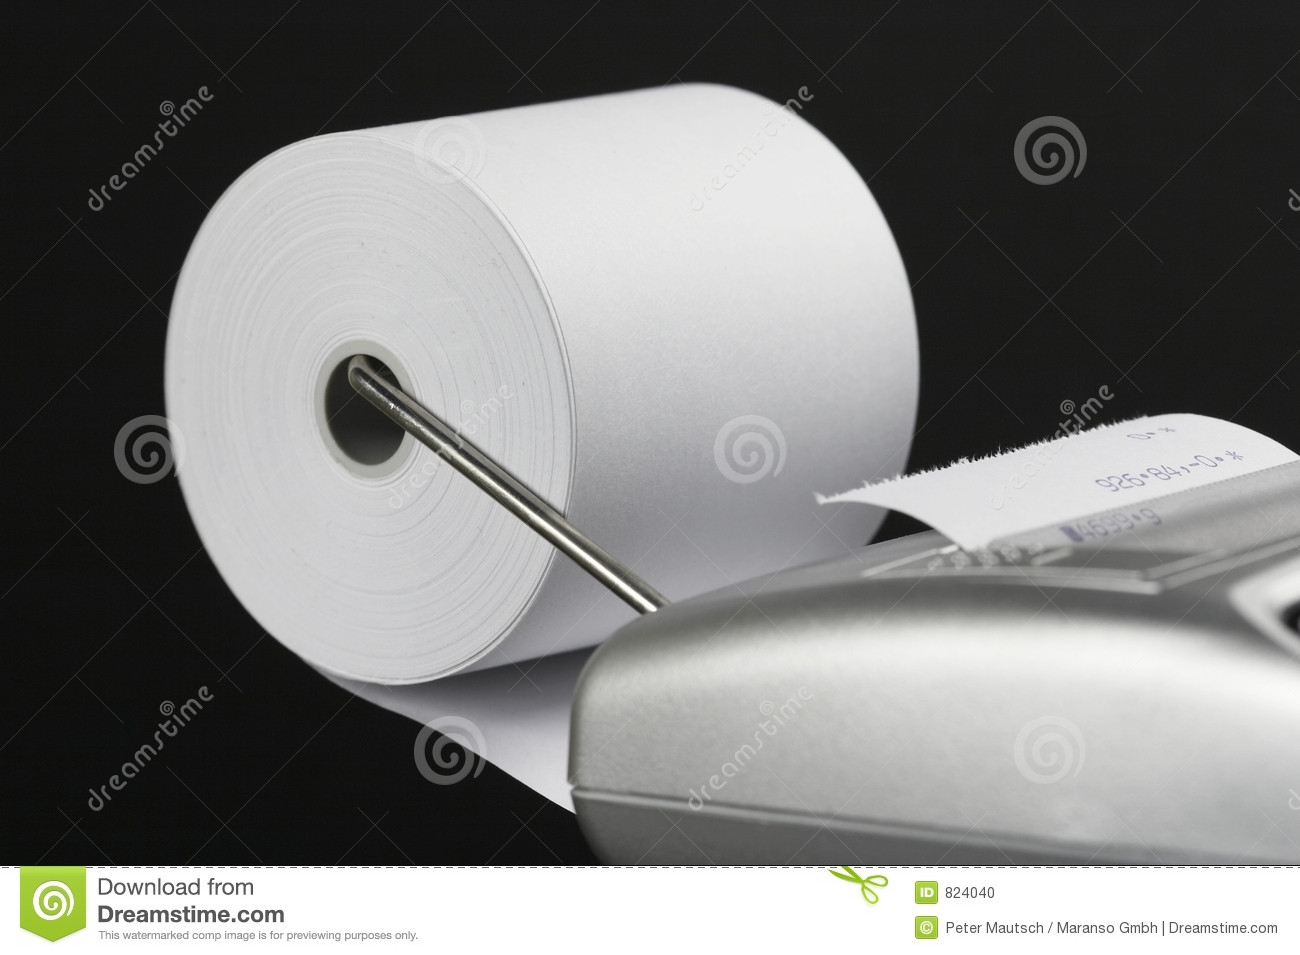 Paper Roll Of A Calculator 03 Stock Photo - Image: 824040